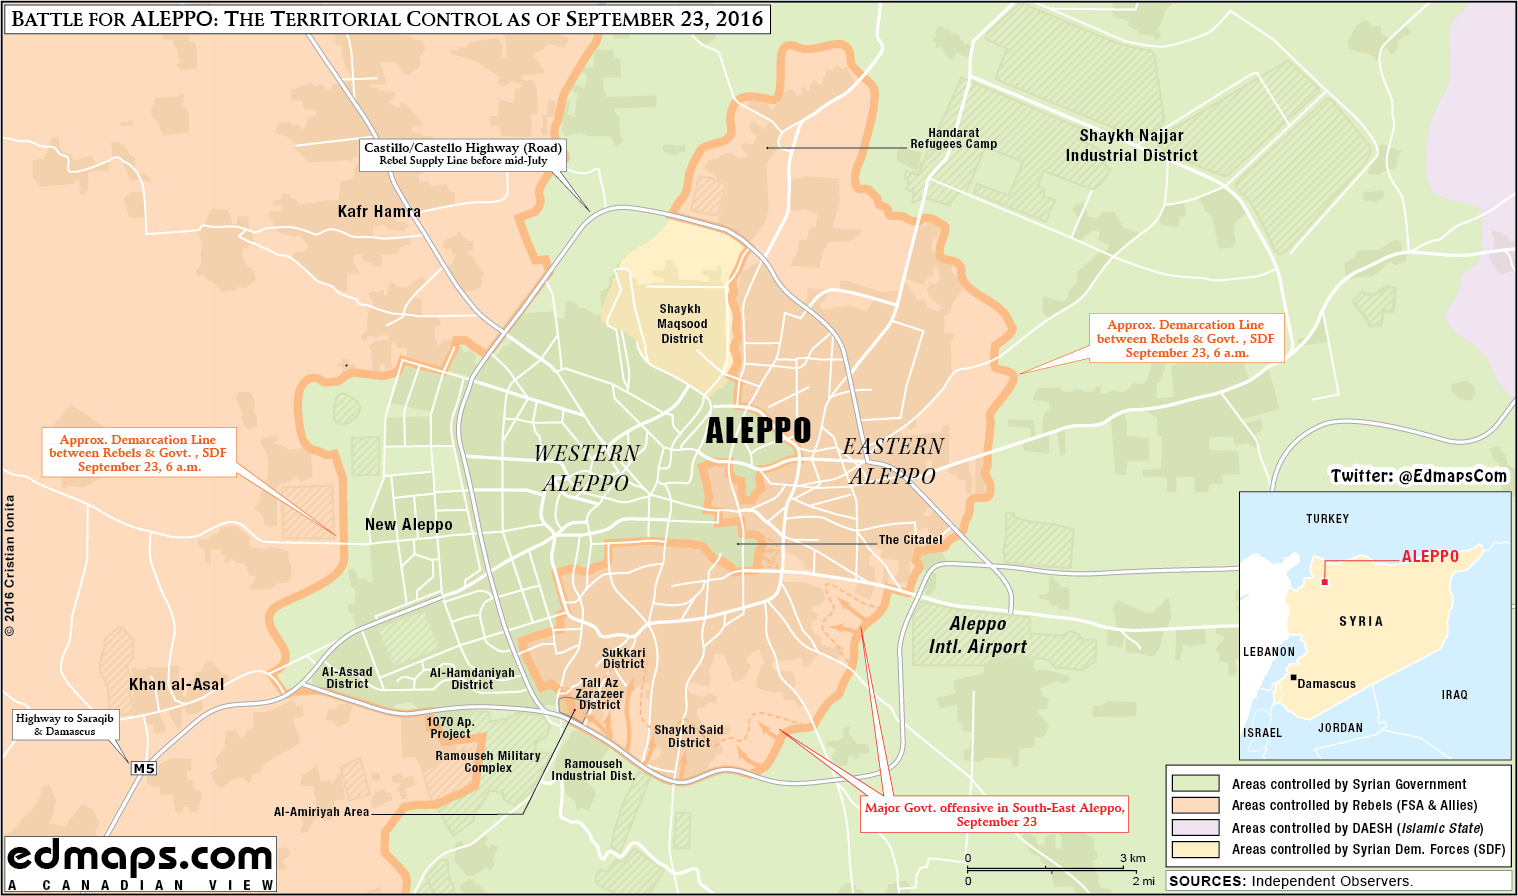 syria_battle_for_aleppo_september_23